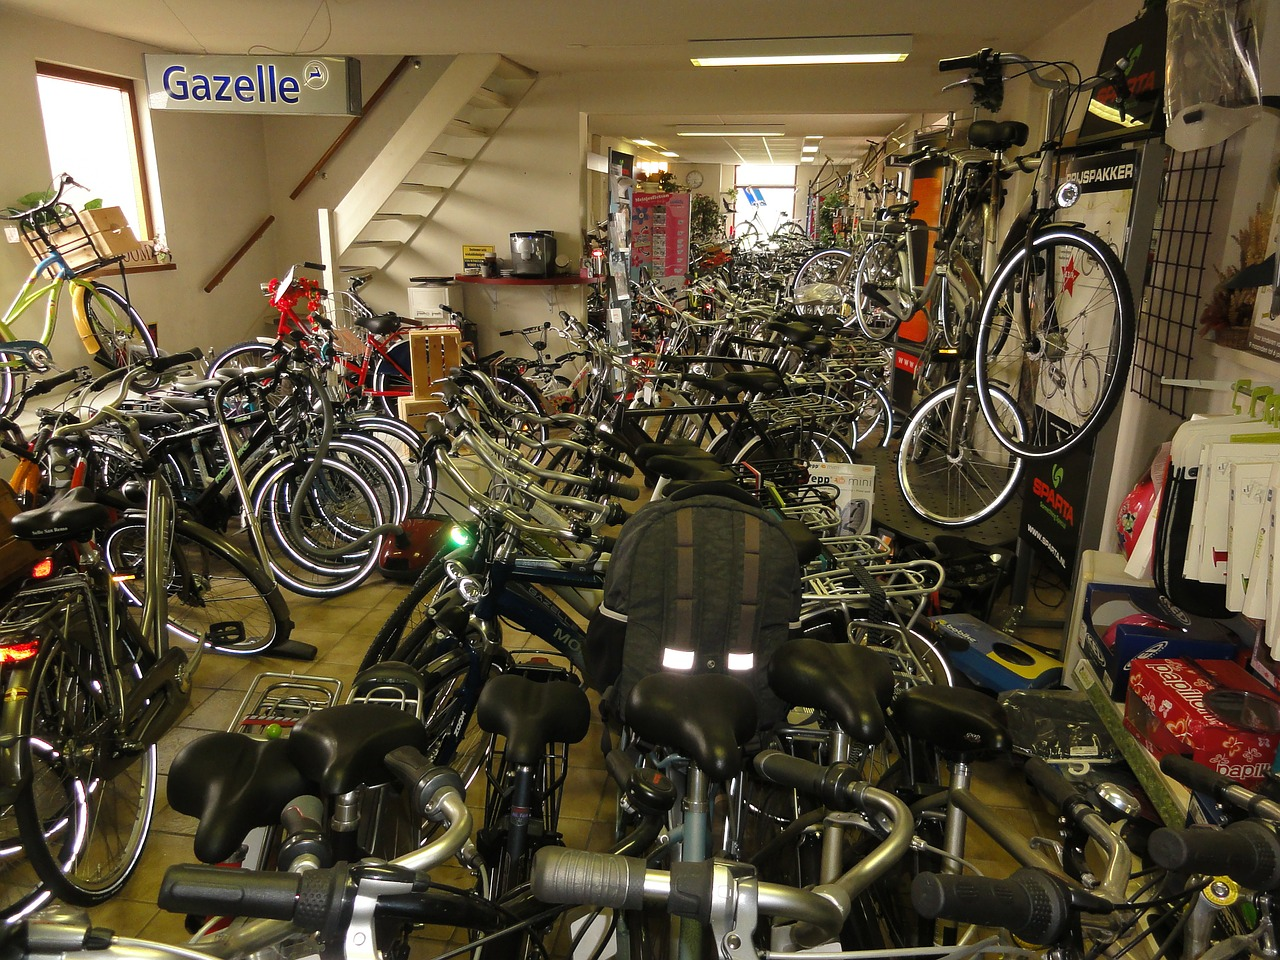 Download free photo of Bikes,bicycles,bicycle,bike,store - from needpix.com